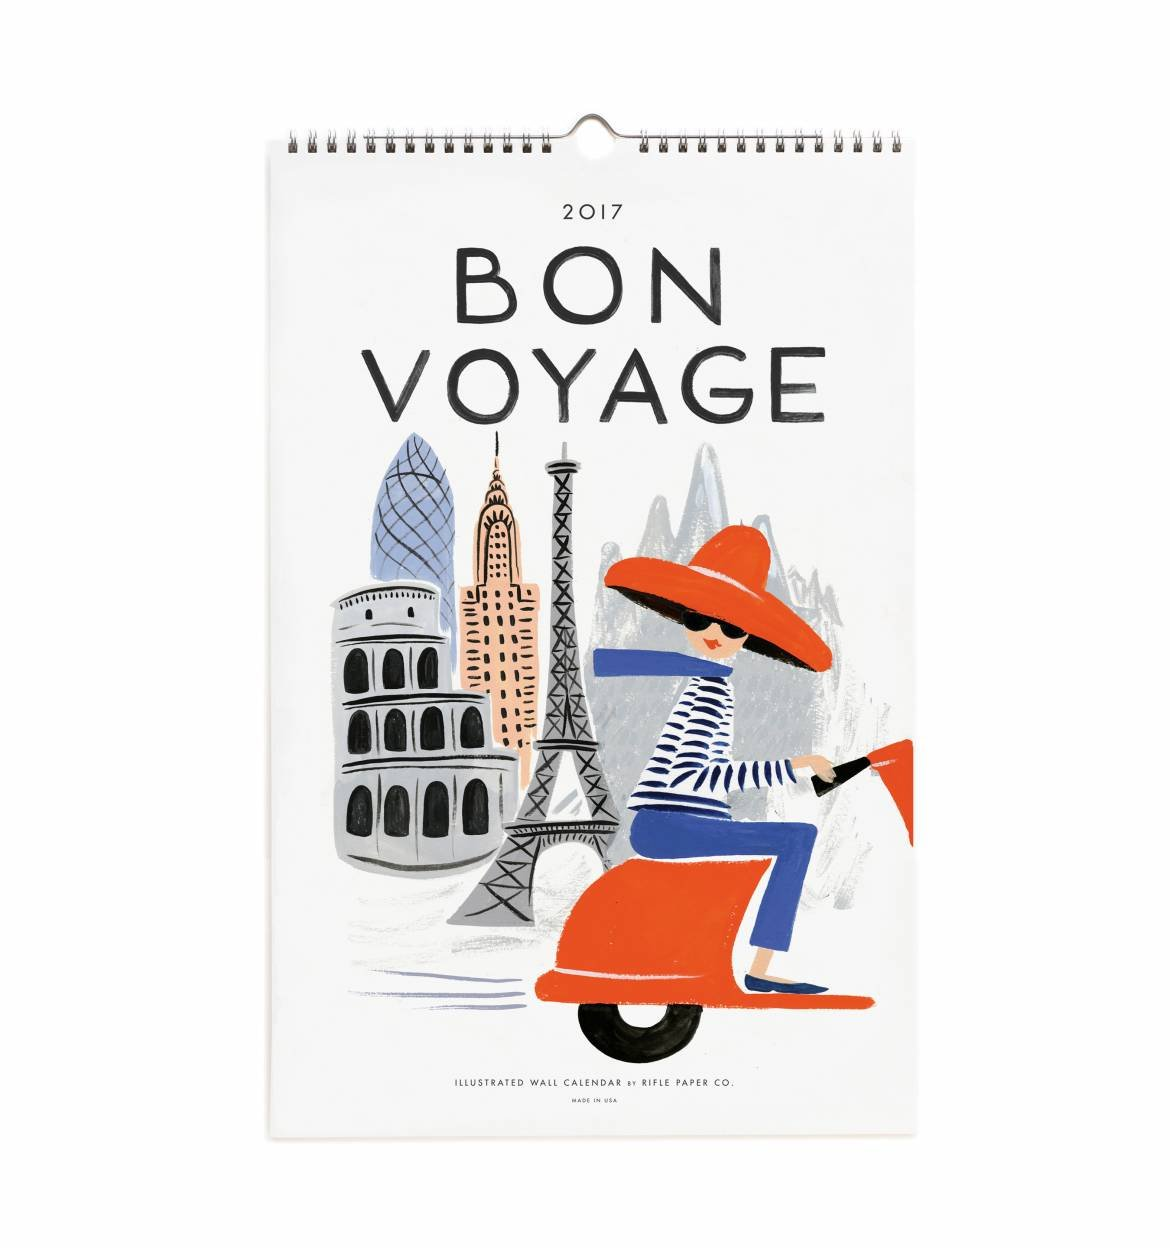 2017 Rifle Paper Co. Bon Voyage Calendar that is perfect for framing and creating a gallery wall.